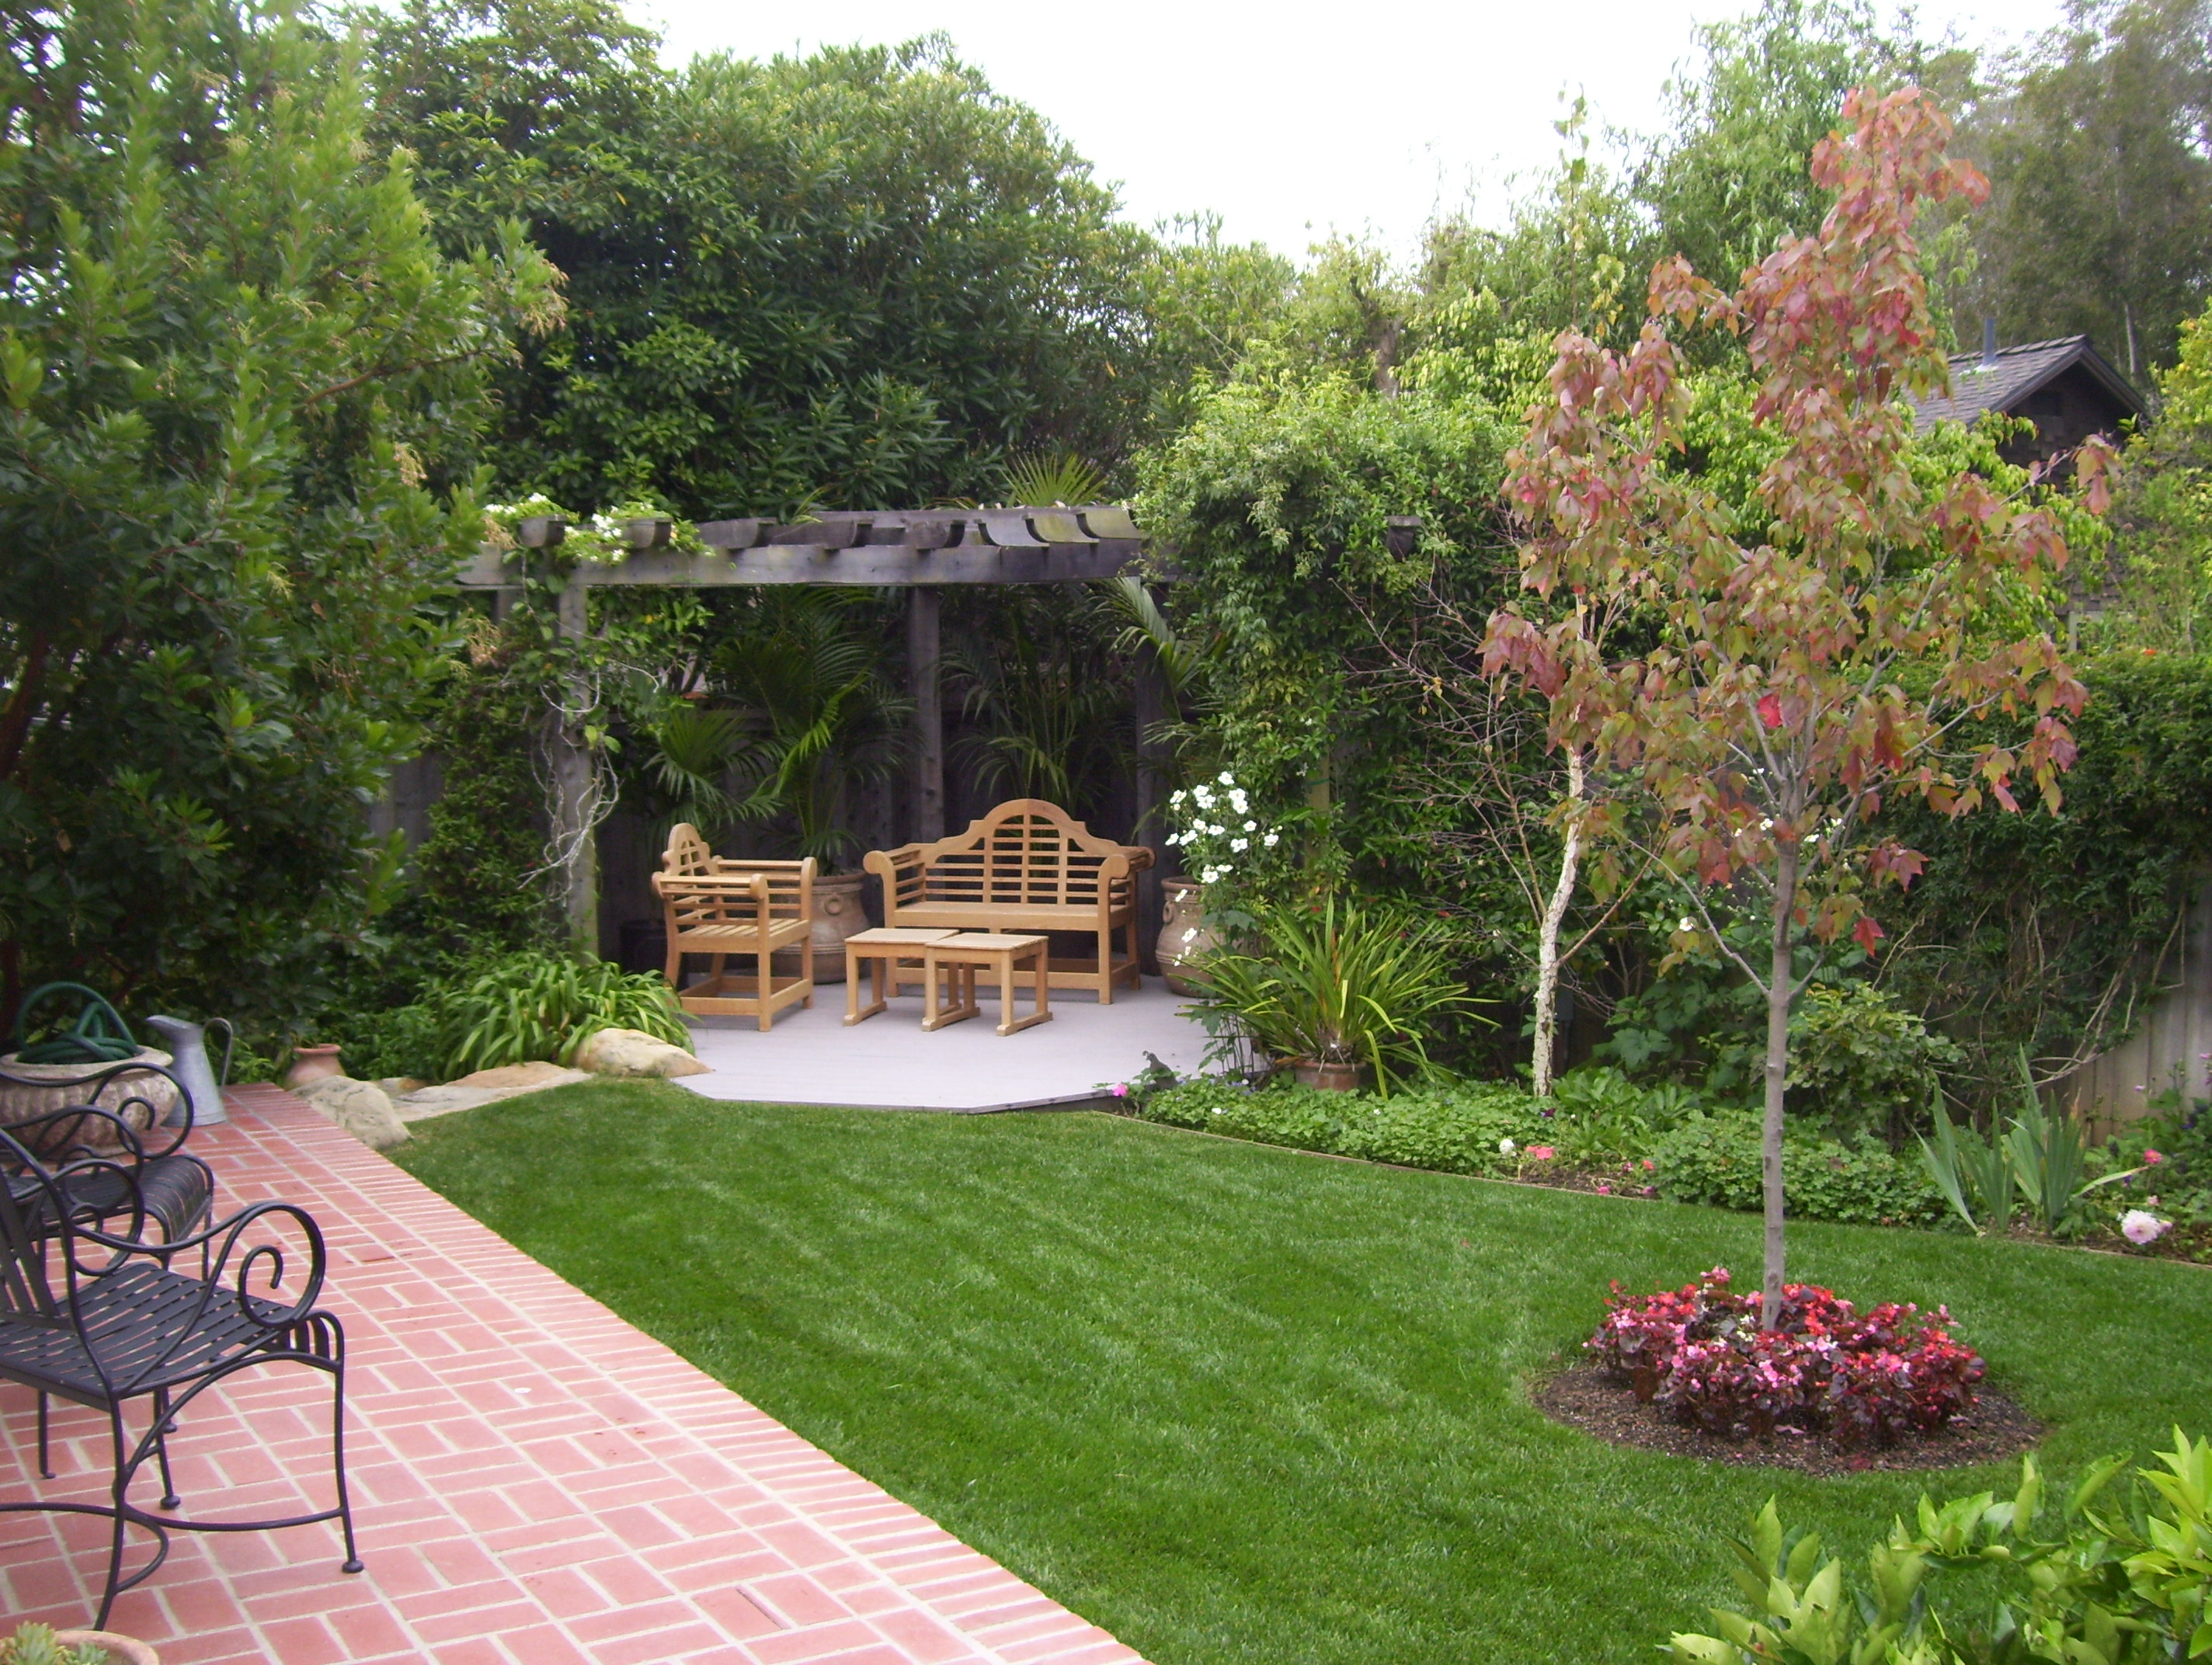 Backyard landscaping ideas santa barbara down to earth for Design your backyard landscape